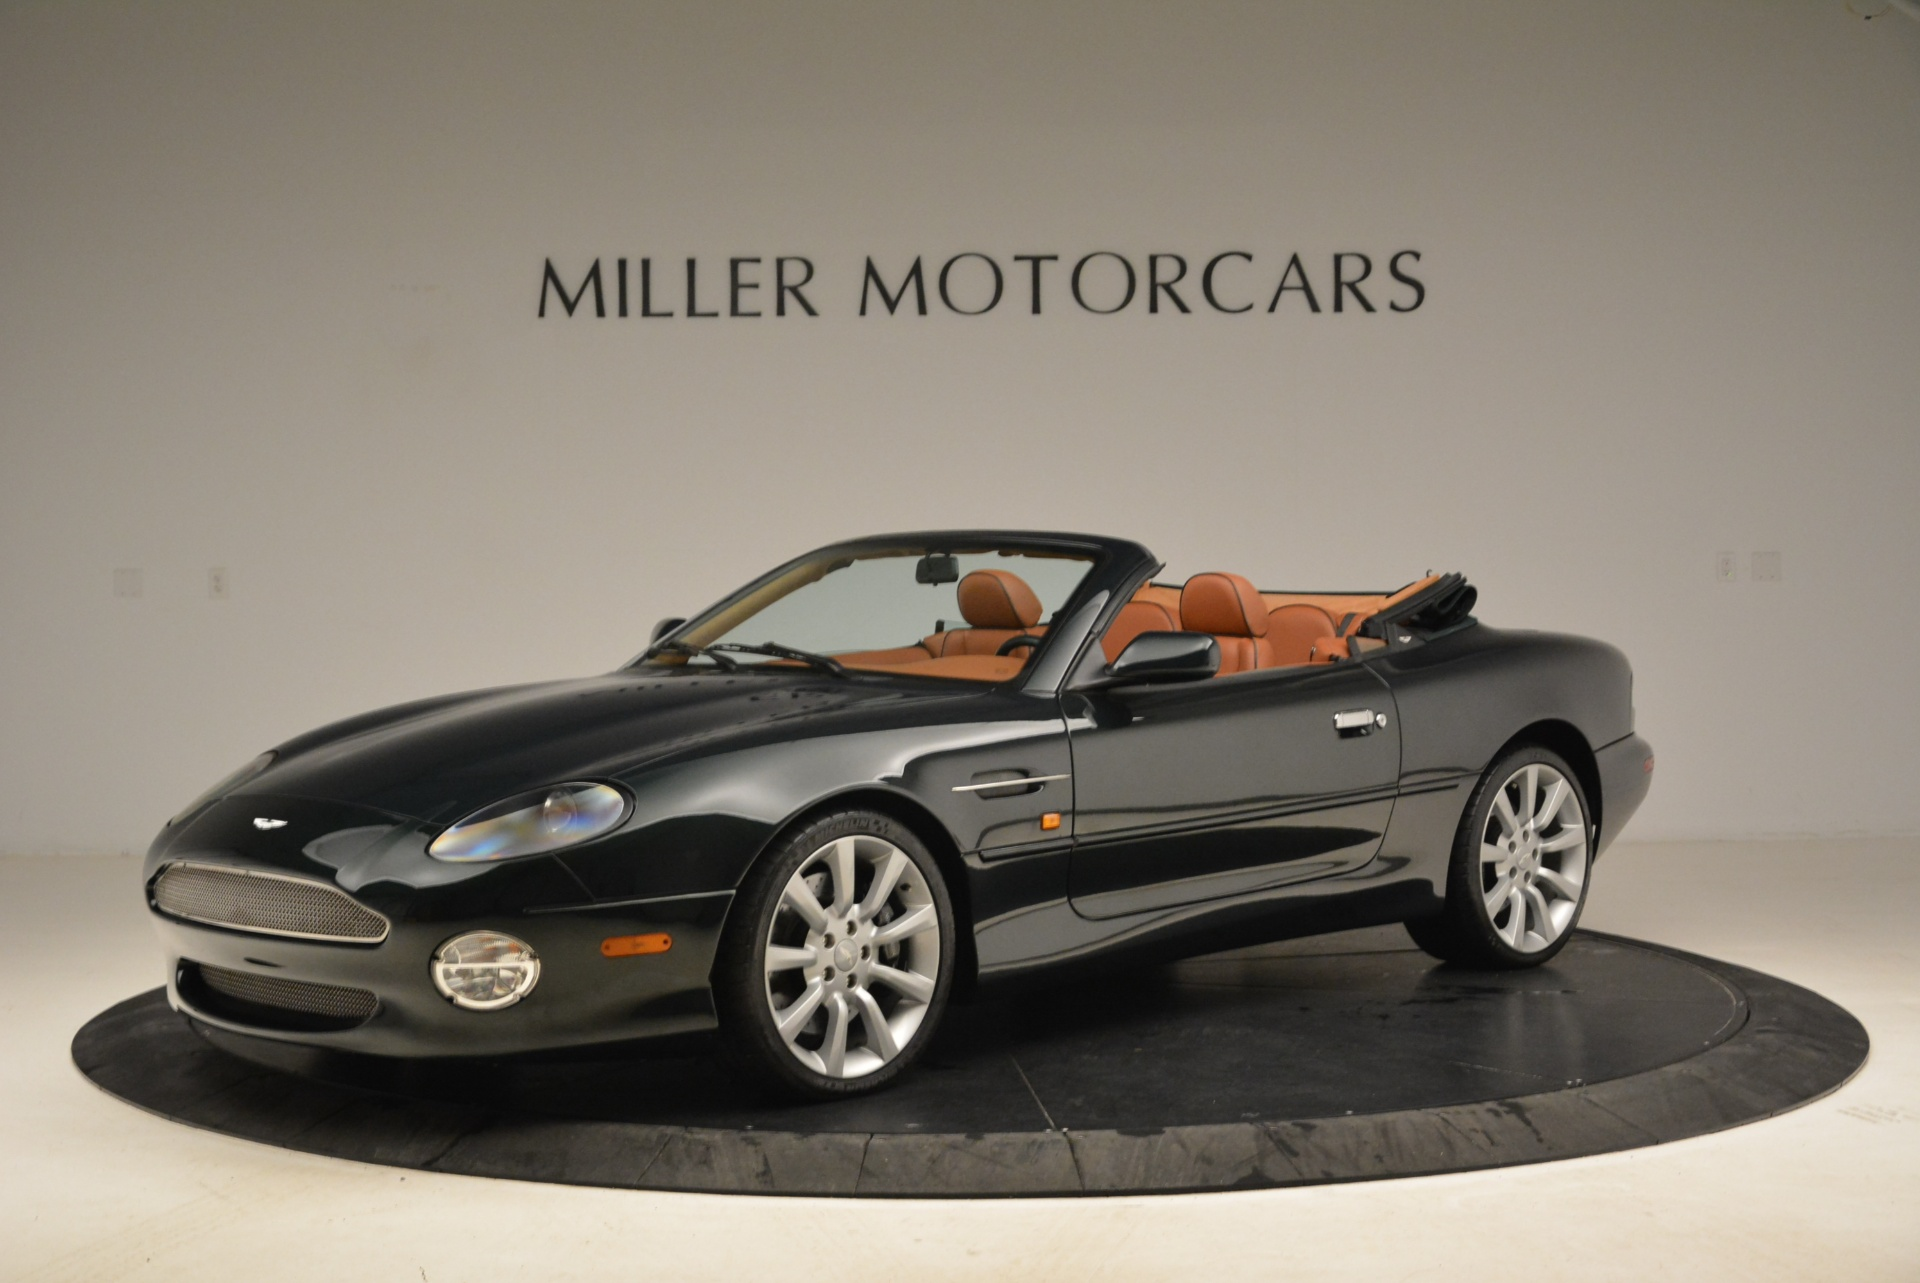 Used 2003 Aston Martin DB7 Vantage Volante For Sale In Westport, CT 2084_p2